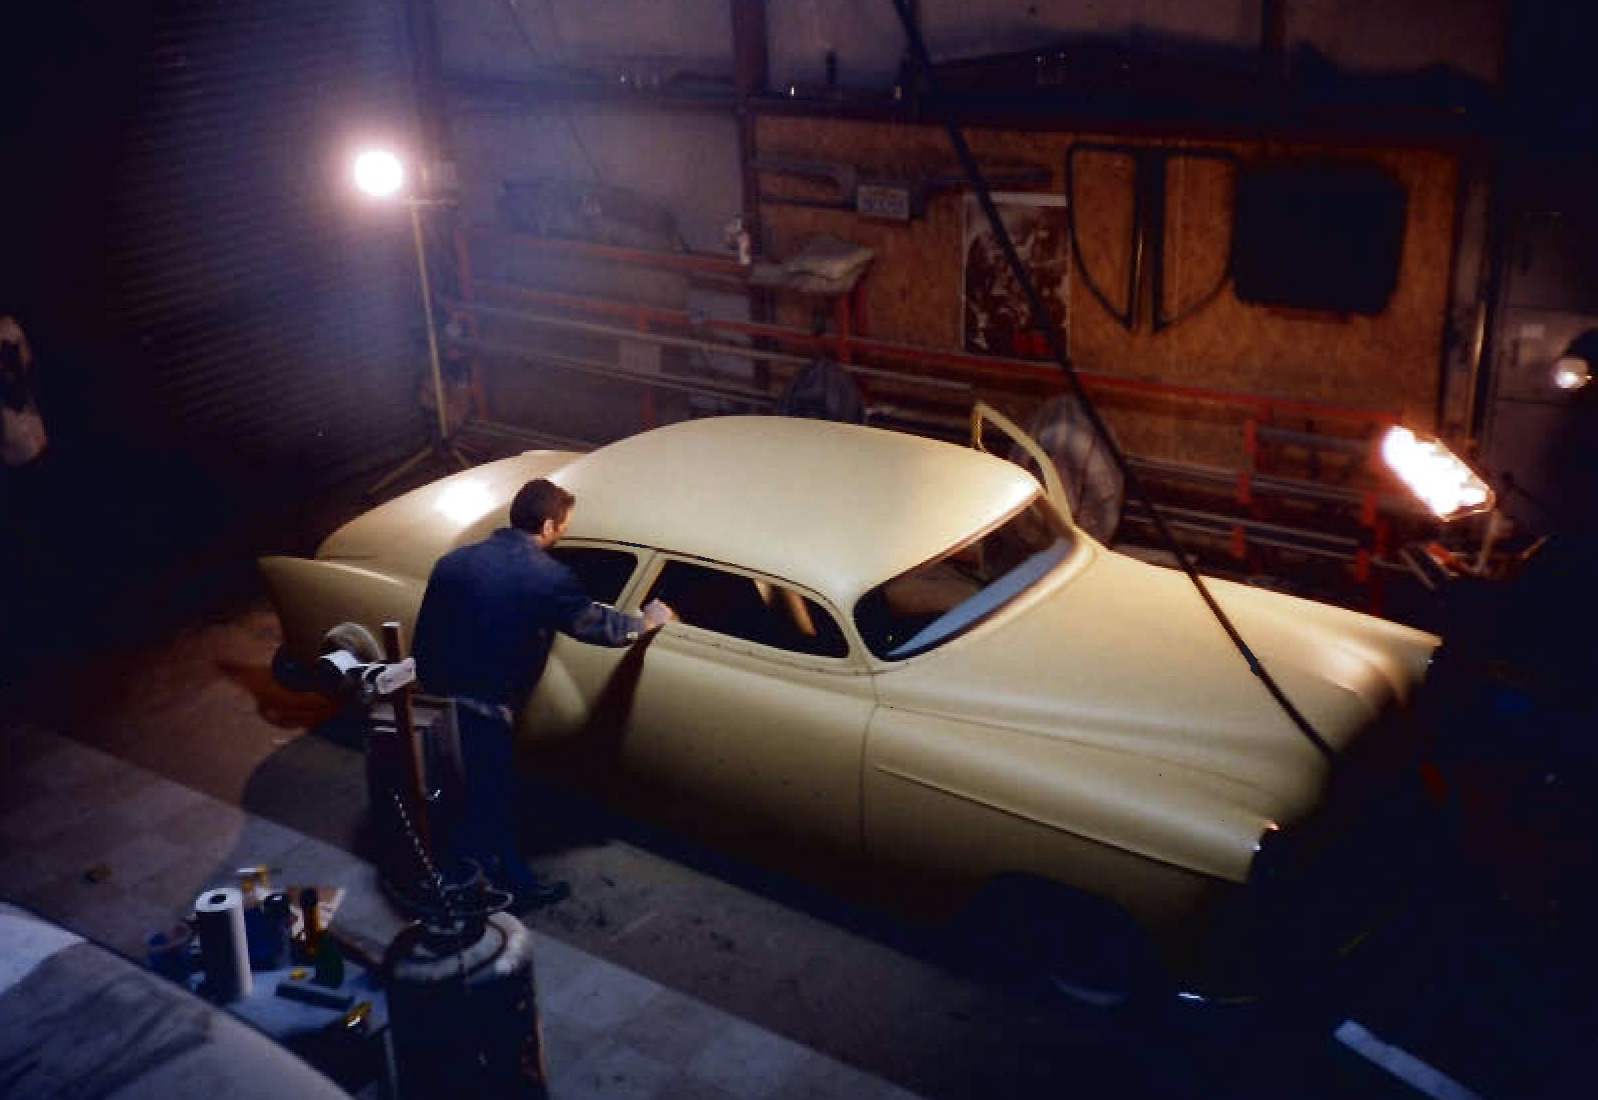 Working on the 1953 Chevy, early 1990's